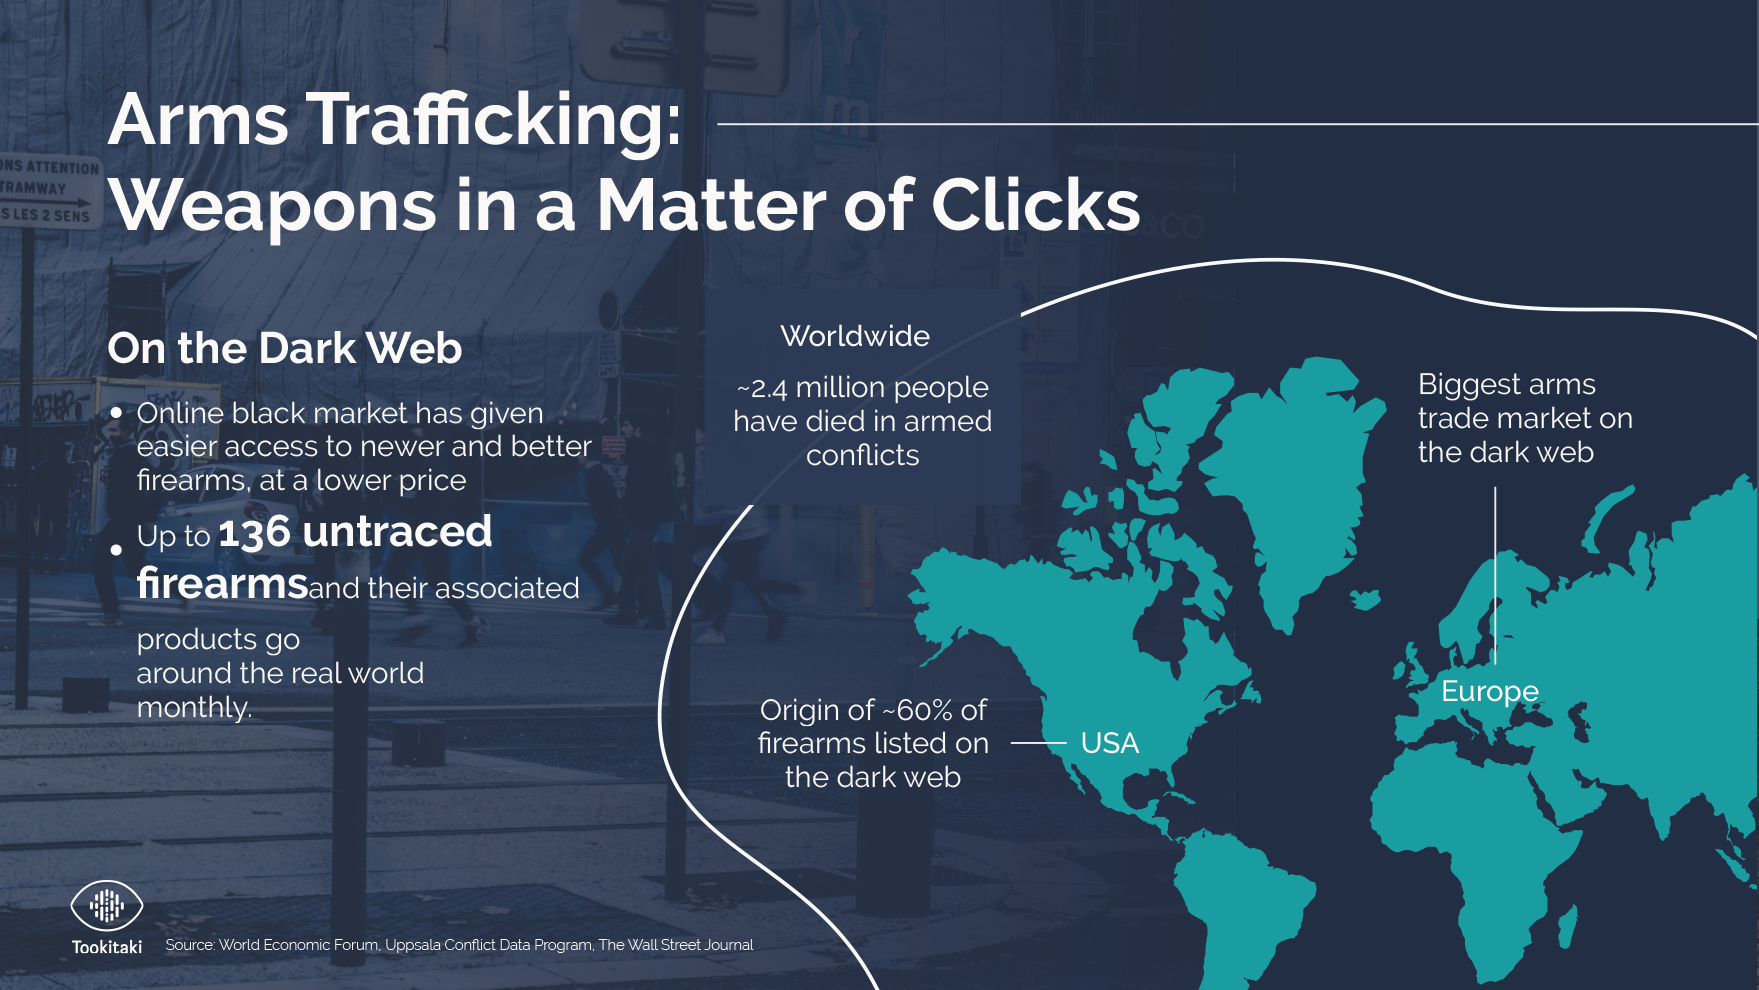 Arms Trafficking: Weapons in a Matter of Clicks